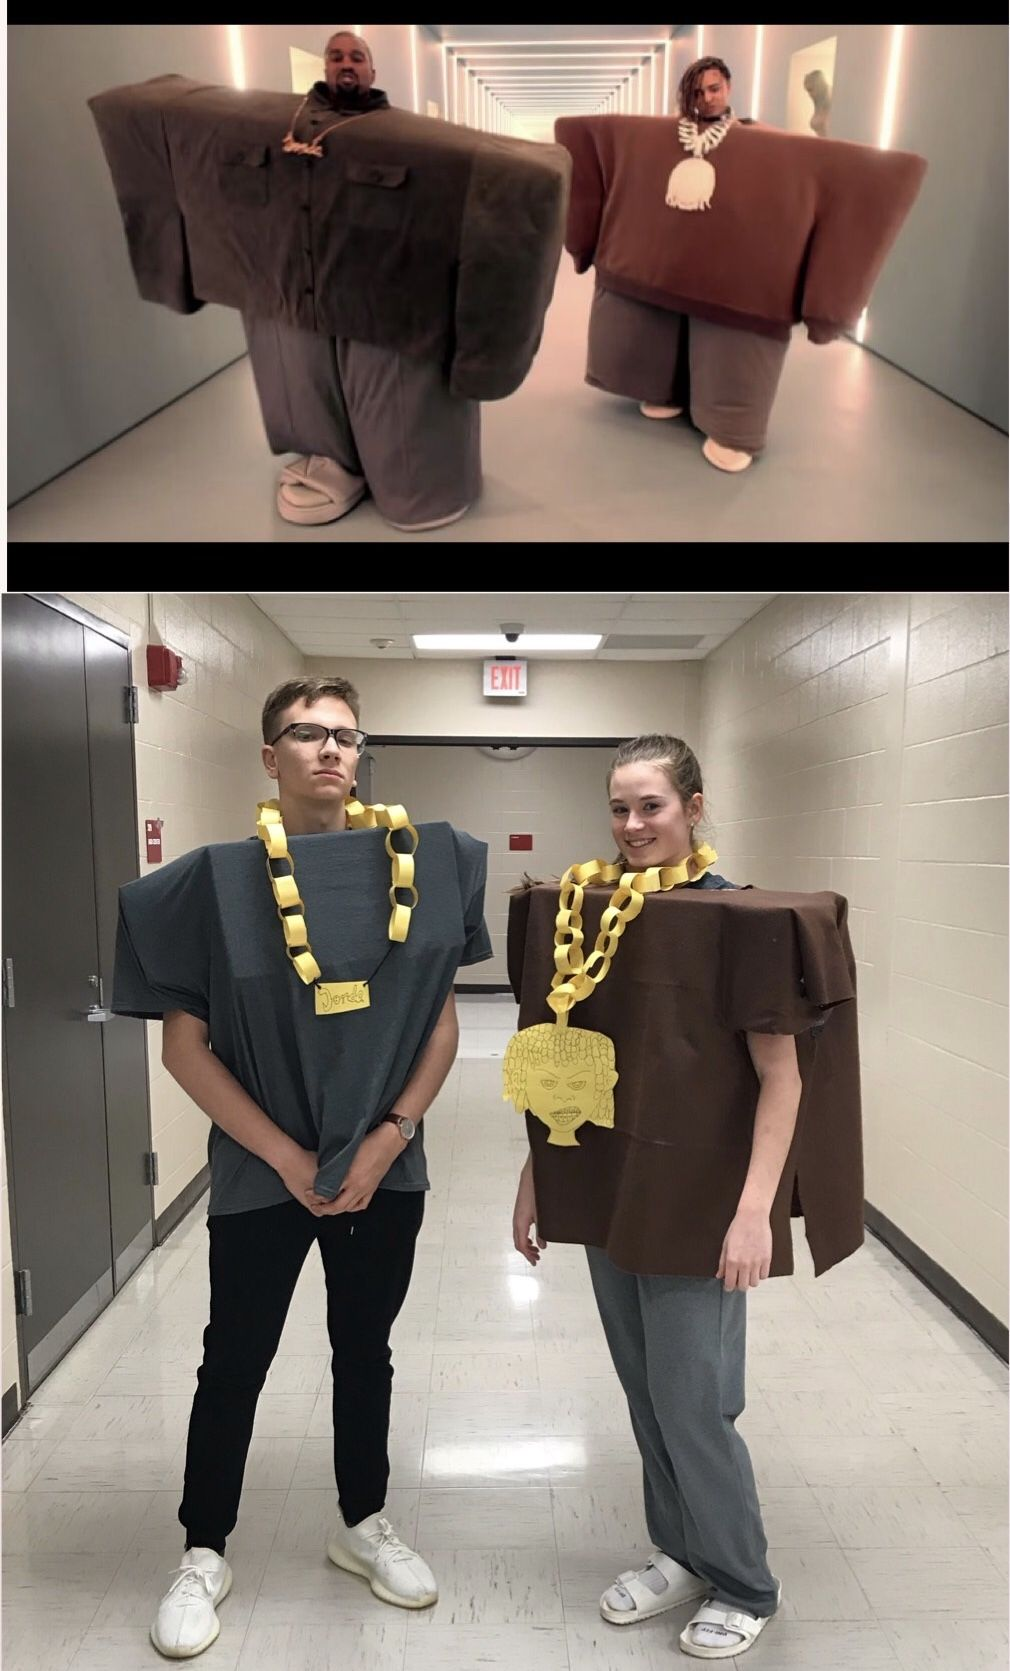 Meme day, Kanye \u201cI love it\u201d meme costume Spirit week